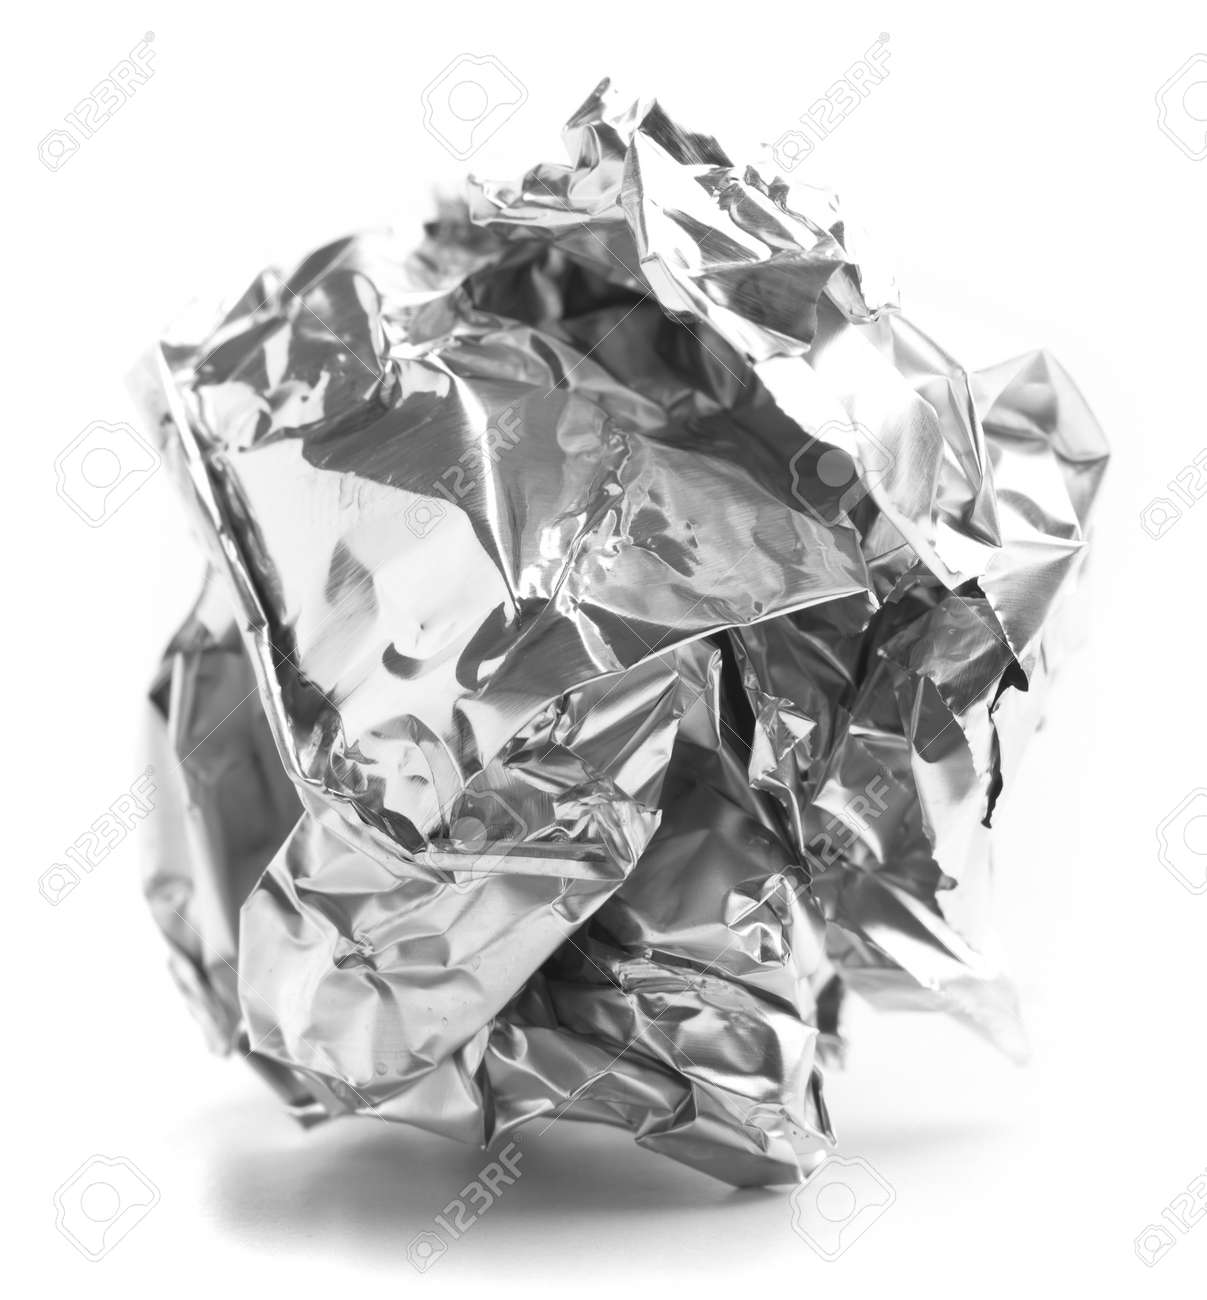 8326555-aluminum-paper-ball-isolated-on-a-white-background-Stock-Photo.jpg